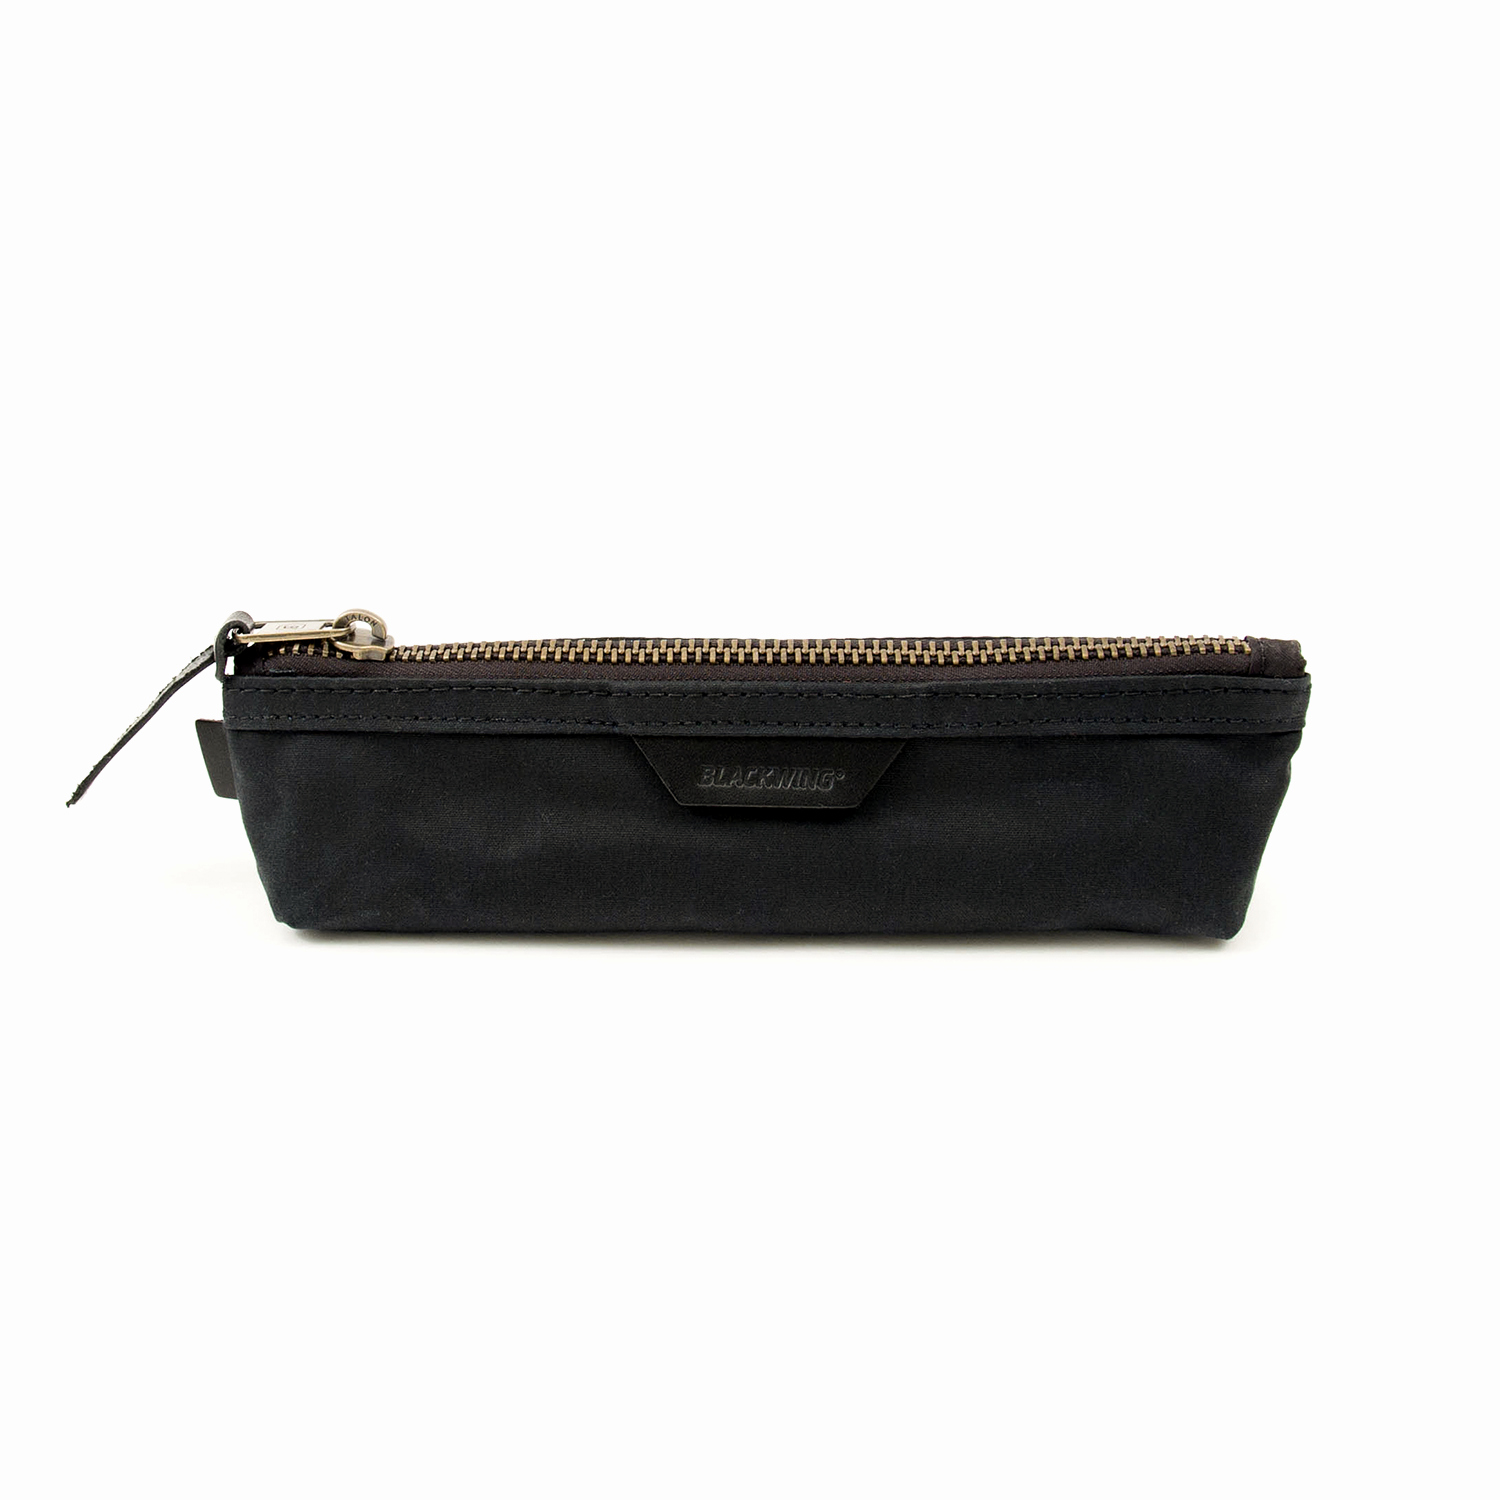 A Picture Of A Pencil Luxury Blackwing Pencil Pouch Carry 24 Blackwing Pencils